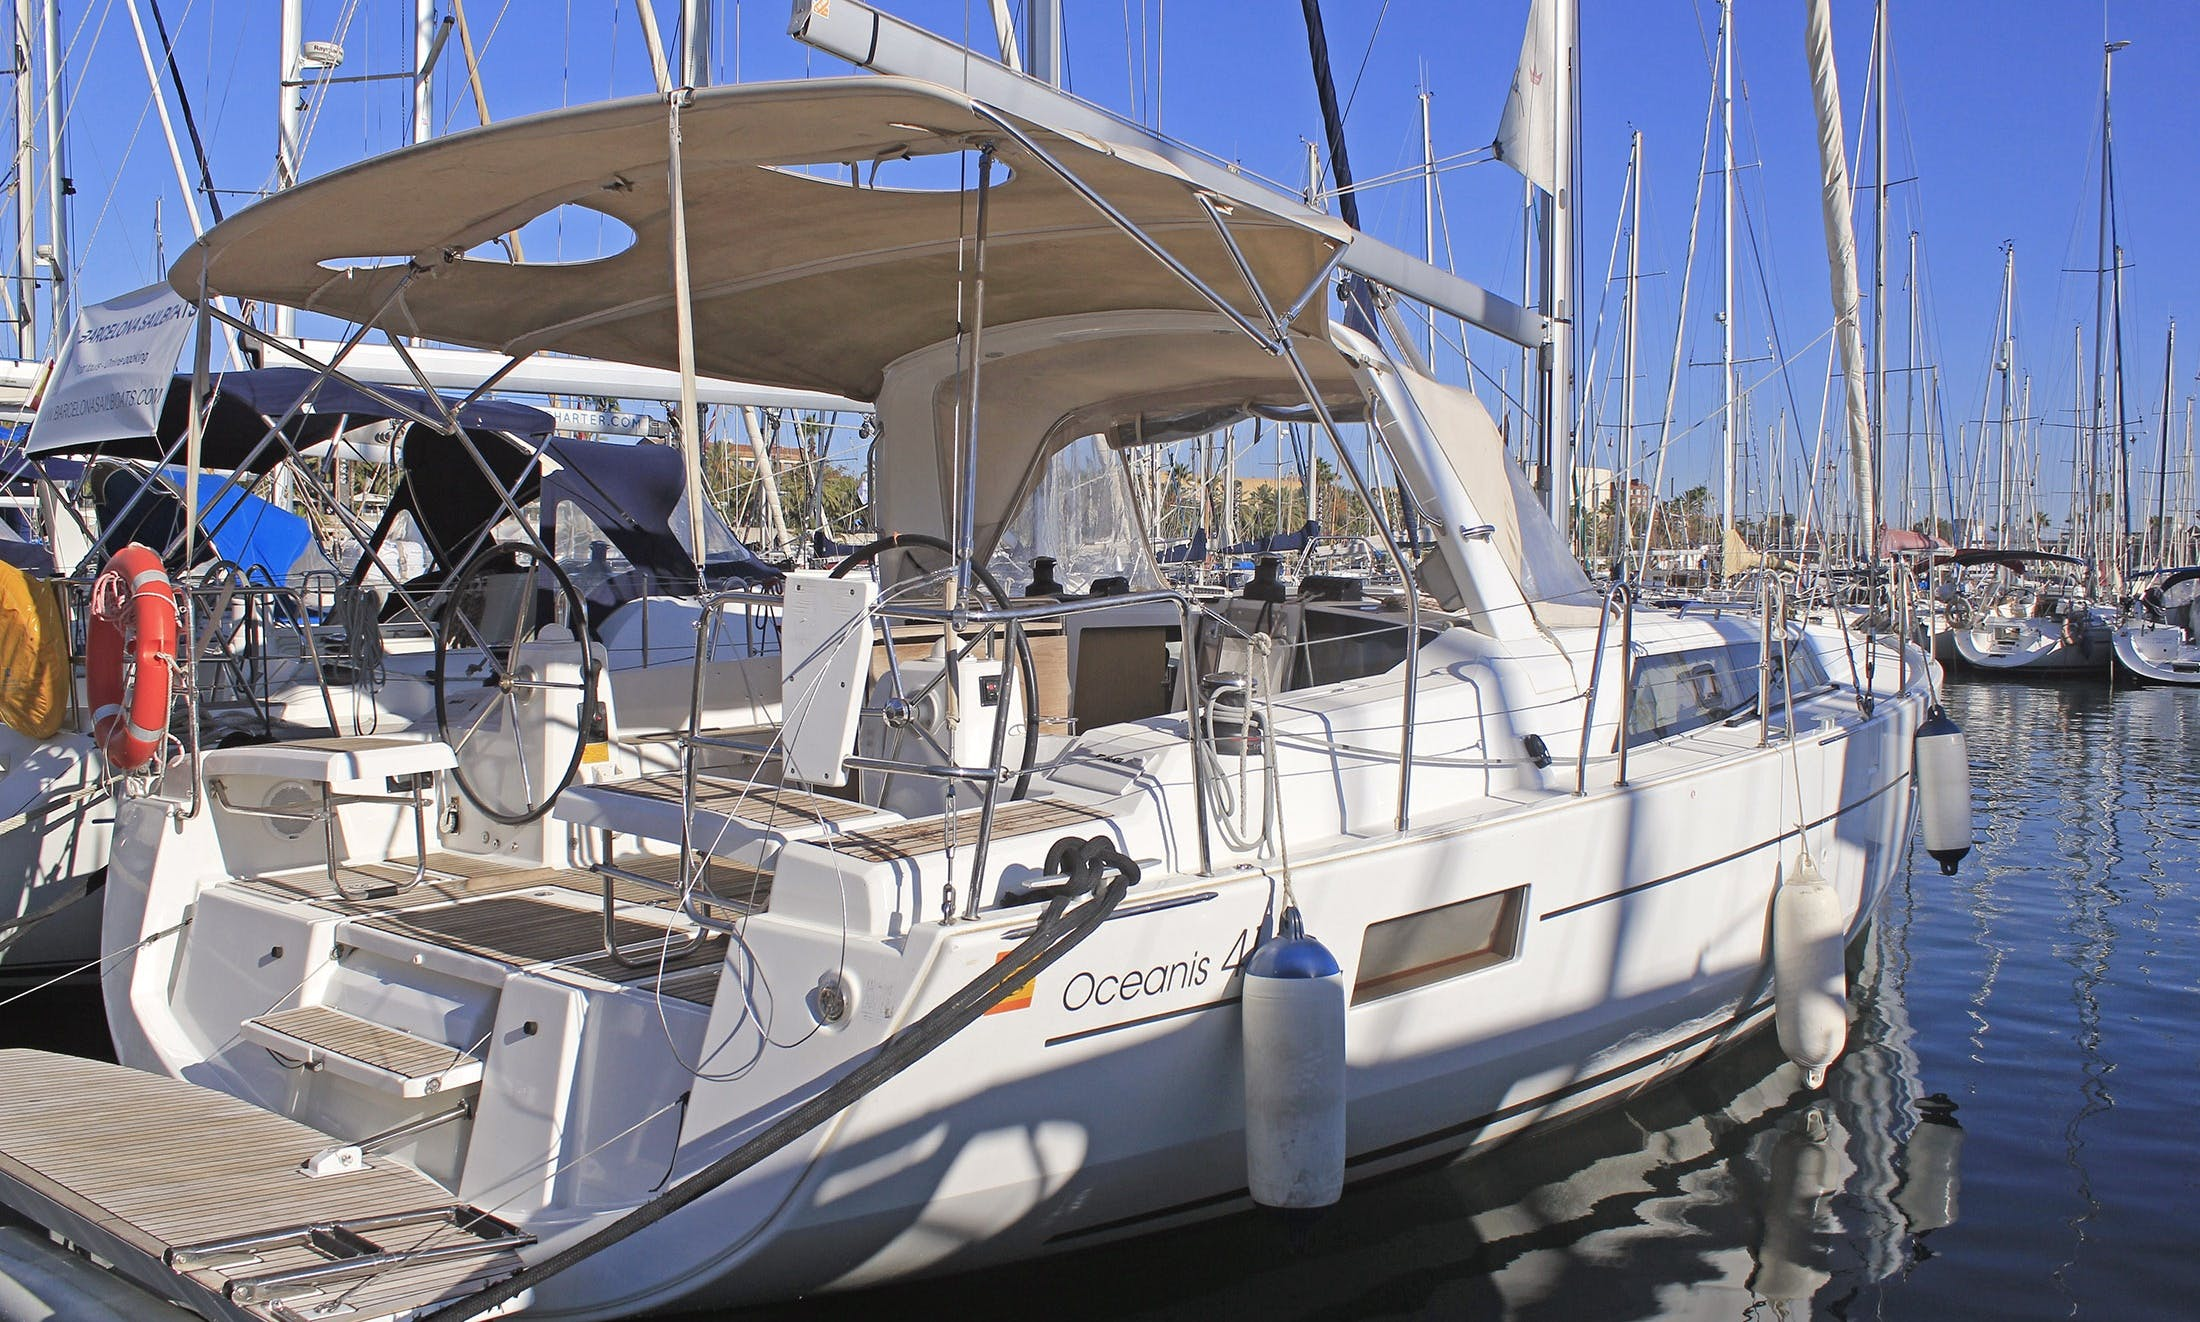 Charter the 2019 Beneteau Oceanis 41.1 Sailing Yacht in Cambrils, Spain!